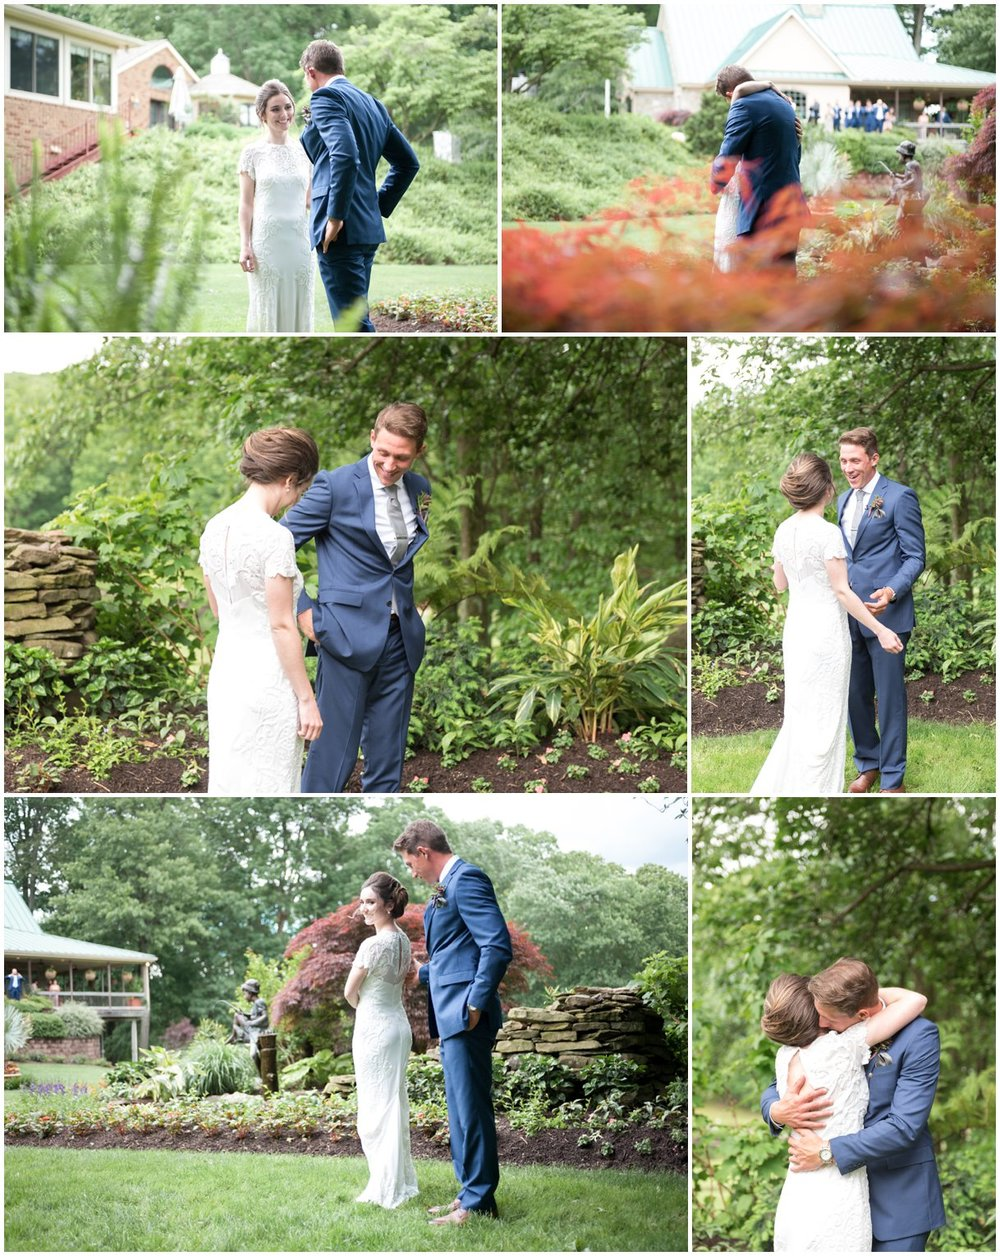 leolainn-lancasterwedding-photographer-photography-outdoor-wedding-first-look-photo